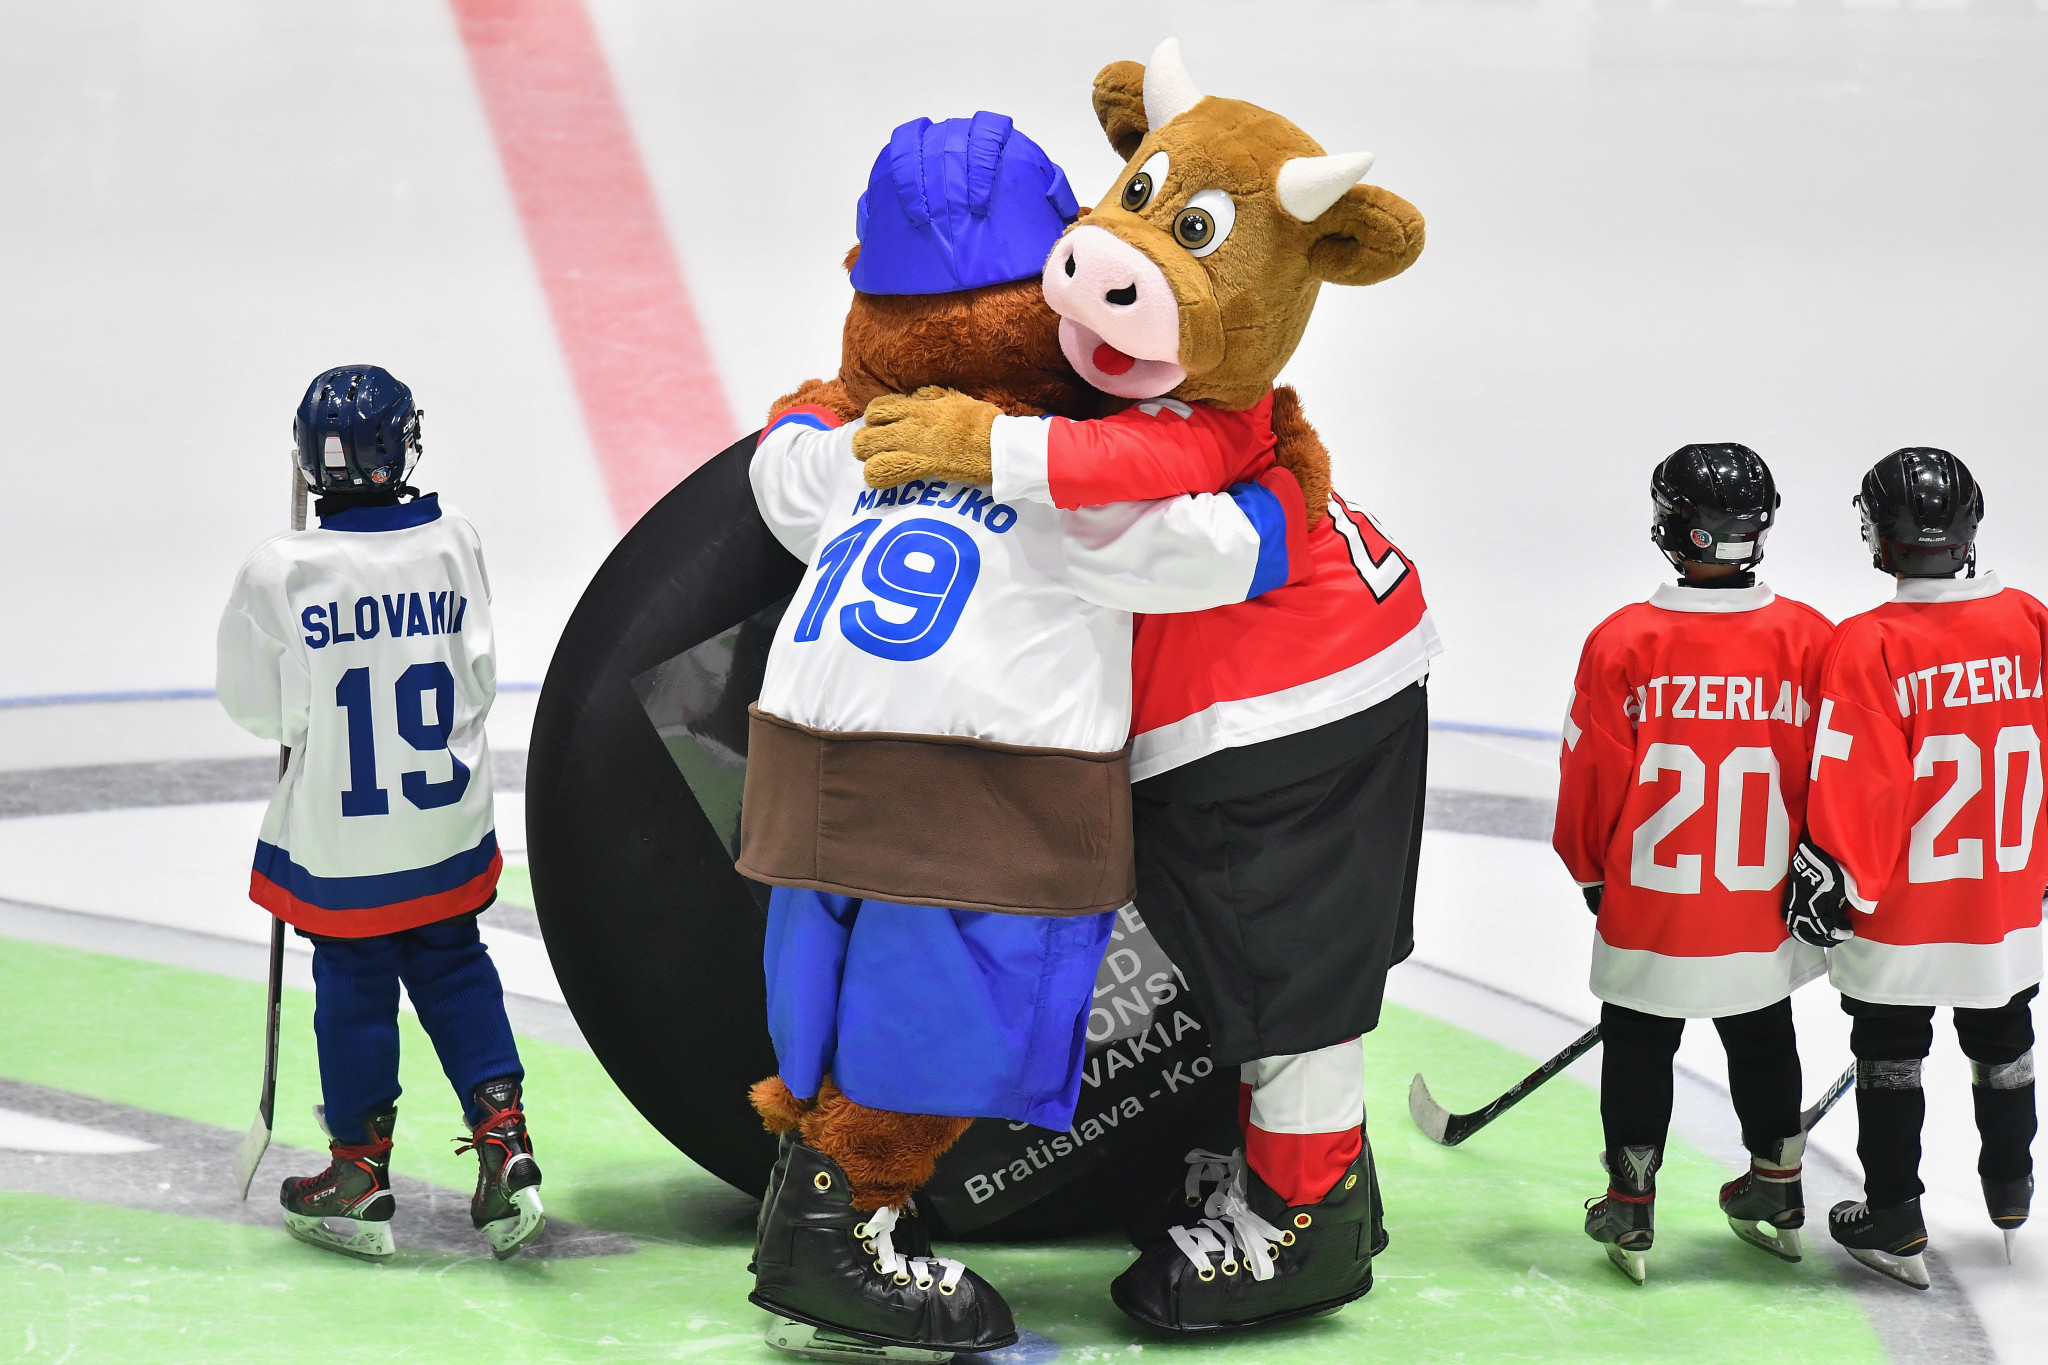 Slovakian mascot Macejko passes Swiss mascot Cooly a giant puck at the final of the International Ice Hockey Federation World Championship in Bratislava ©Getty Images